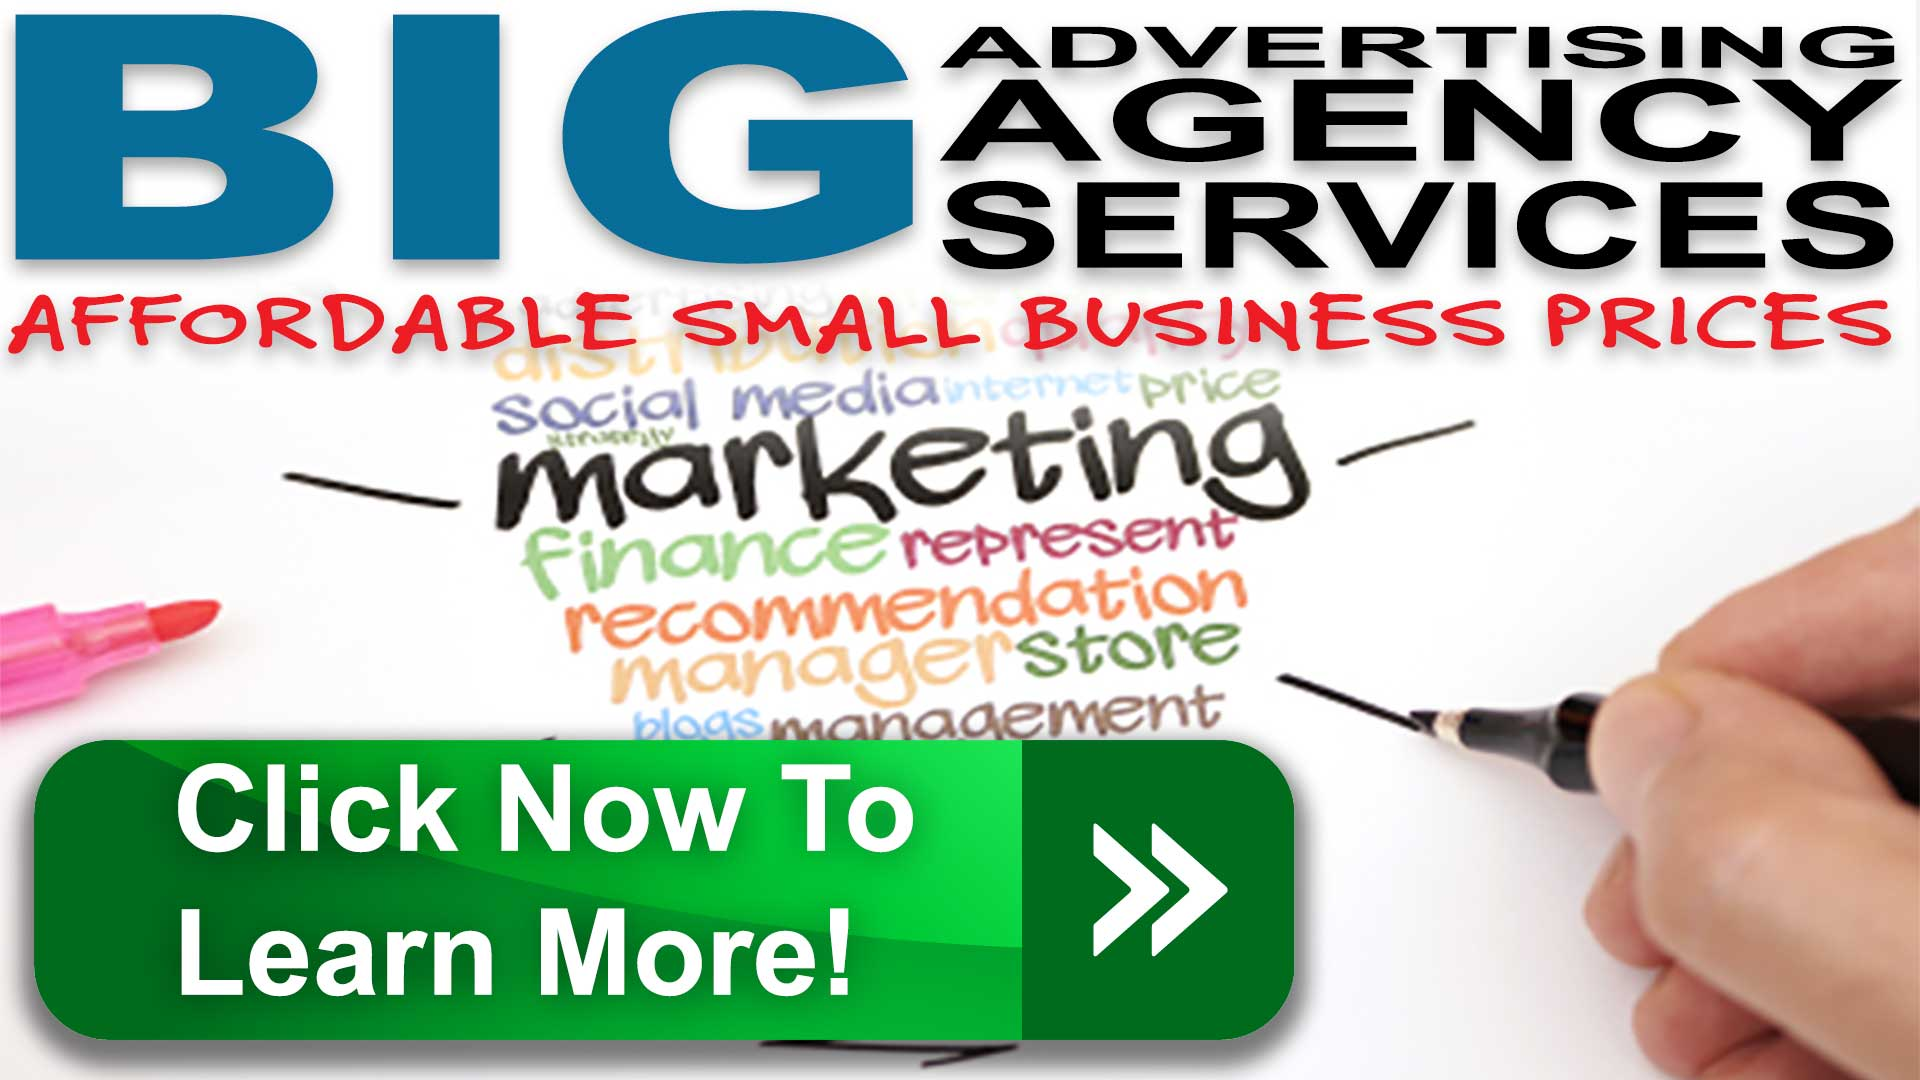 Portland Marketing, Advertising & Website Services